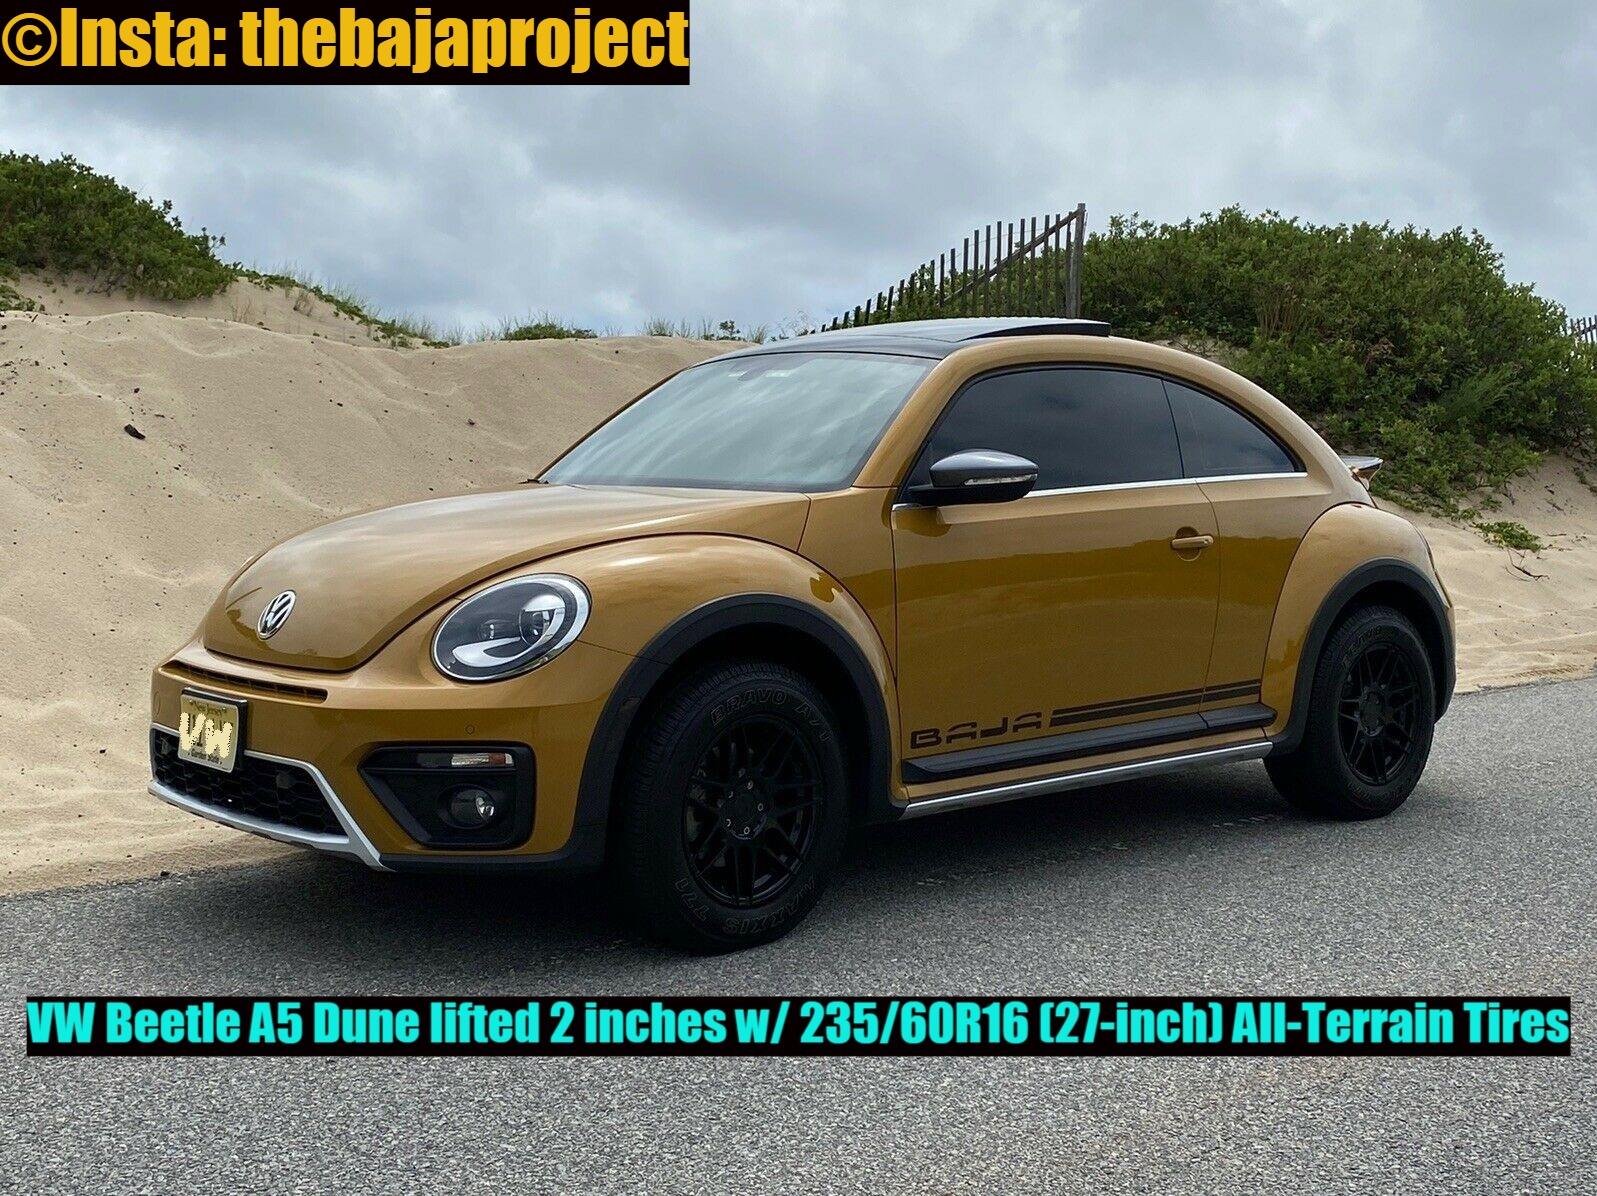 The cool Beetle is lifted w/ firmer high-performance German coils.  Follow more @Insta: thebajaproject